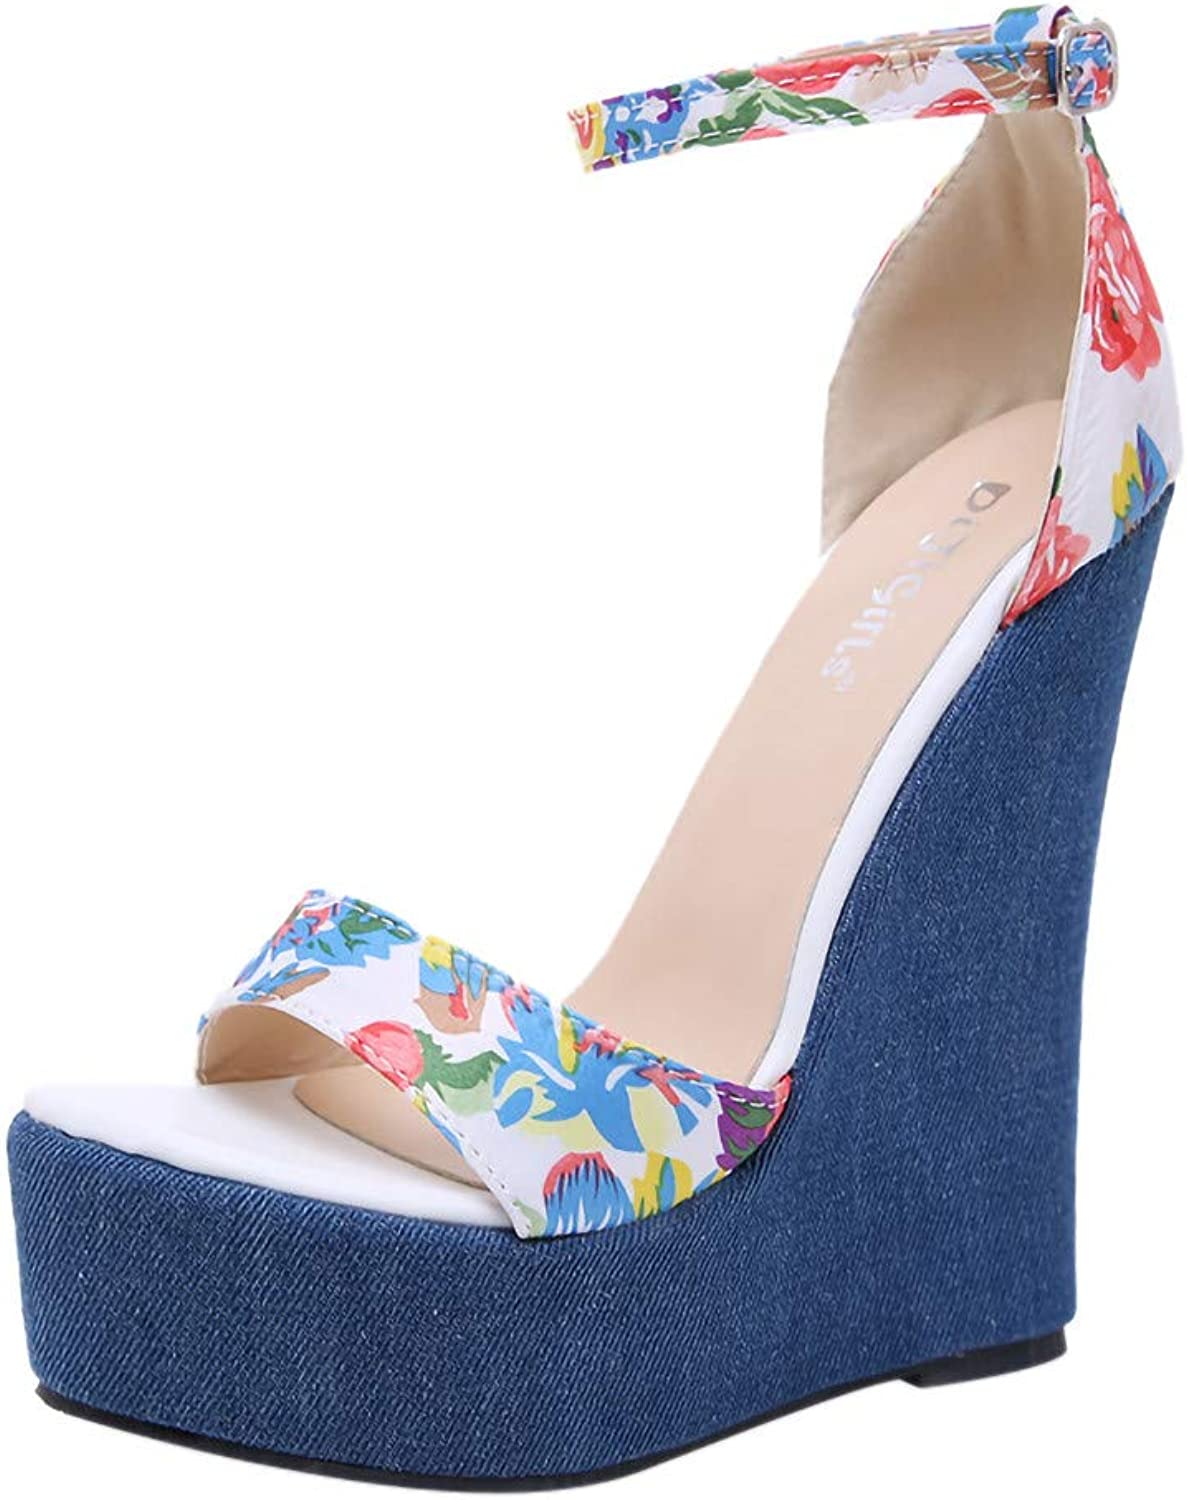 Women's Flower Printed Sandals High Heels Wedges Sandals Single shoes Belt Buckle Ladies' Sandals